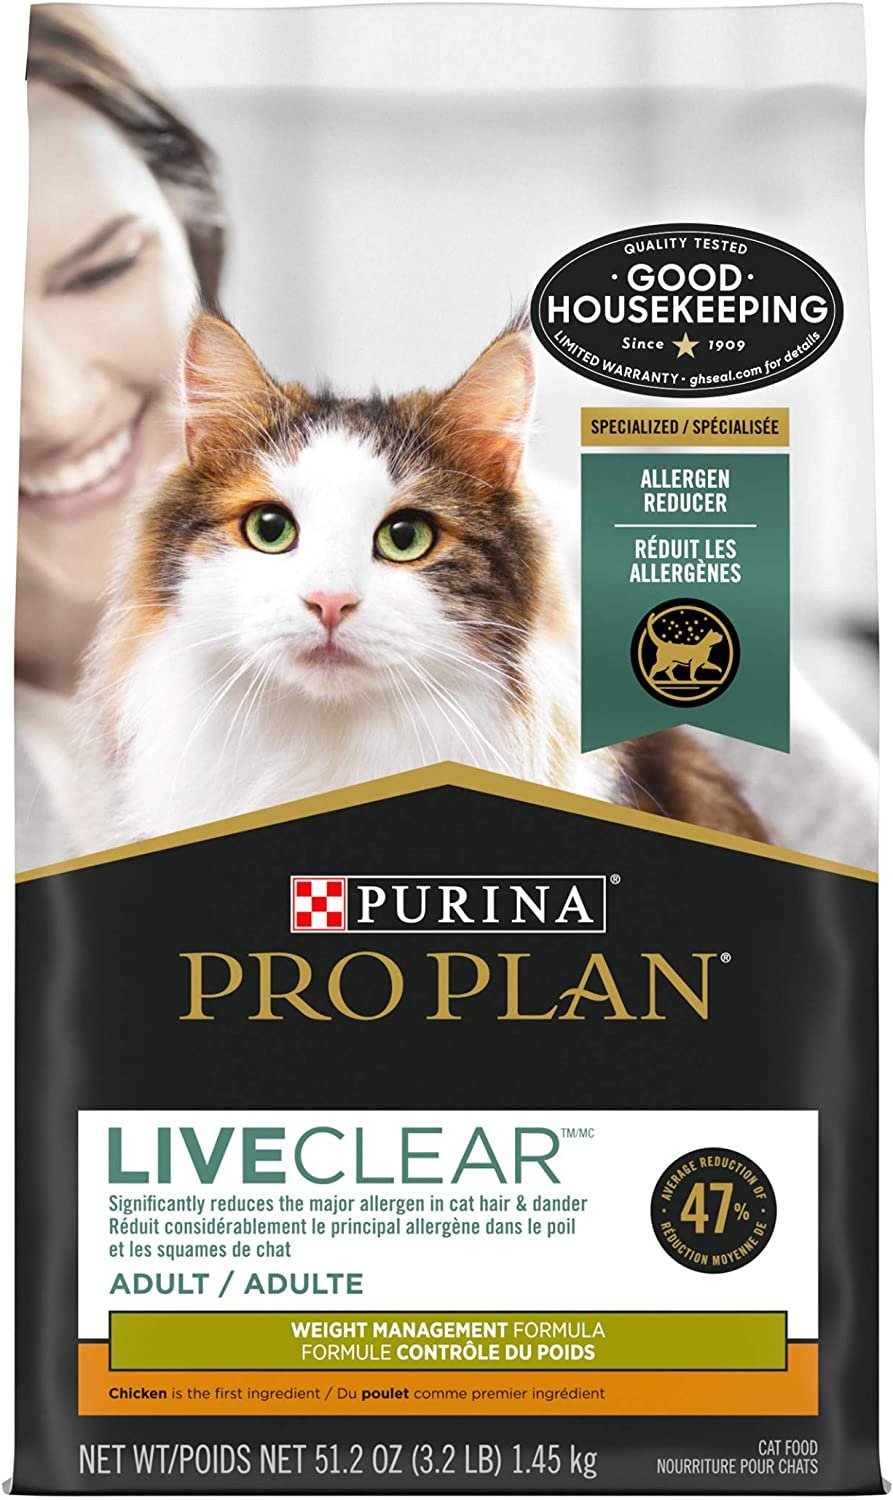 Purina Pro Plan LIVECLEAR Adult Weight Management Formula Dry Cat Food - 3.5 lb. Bag